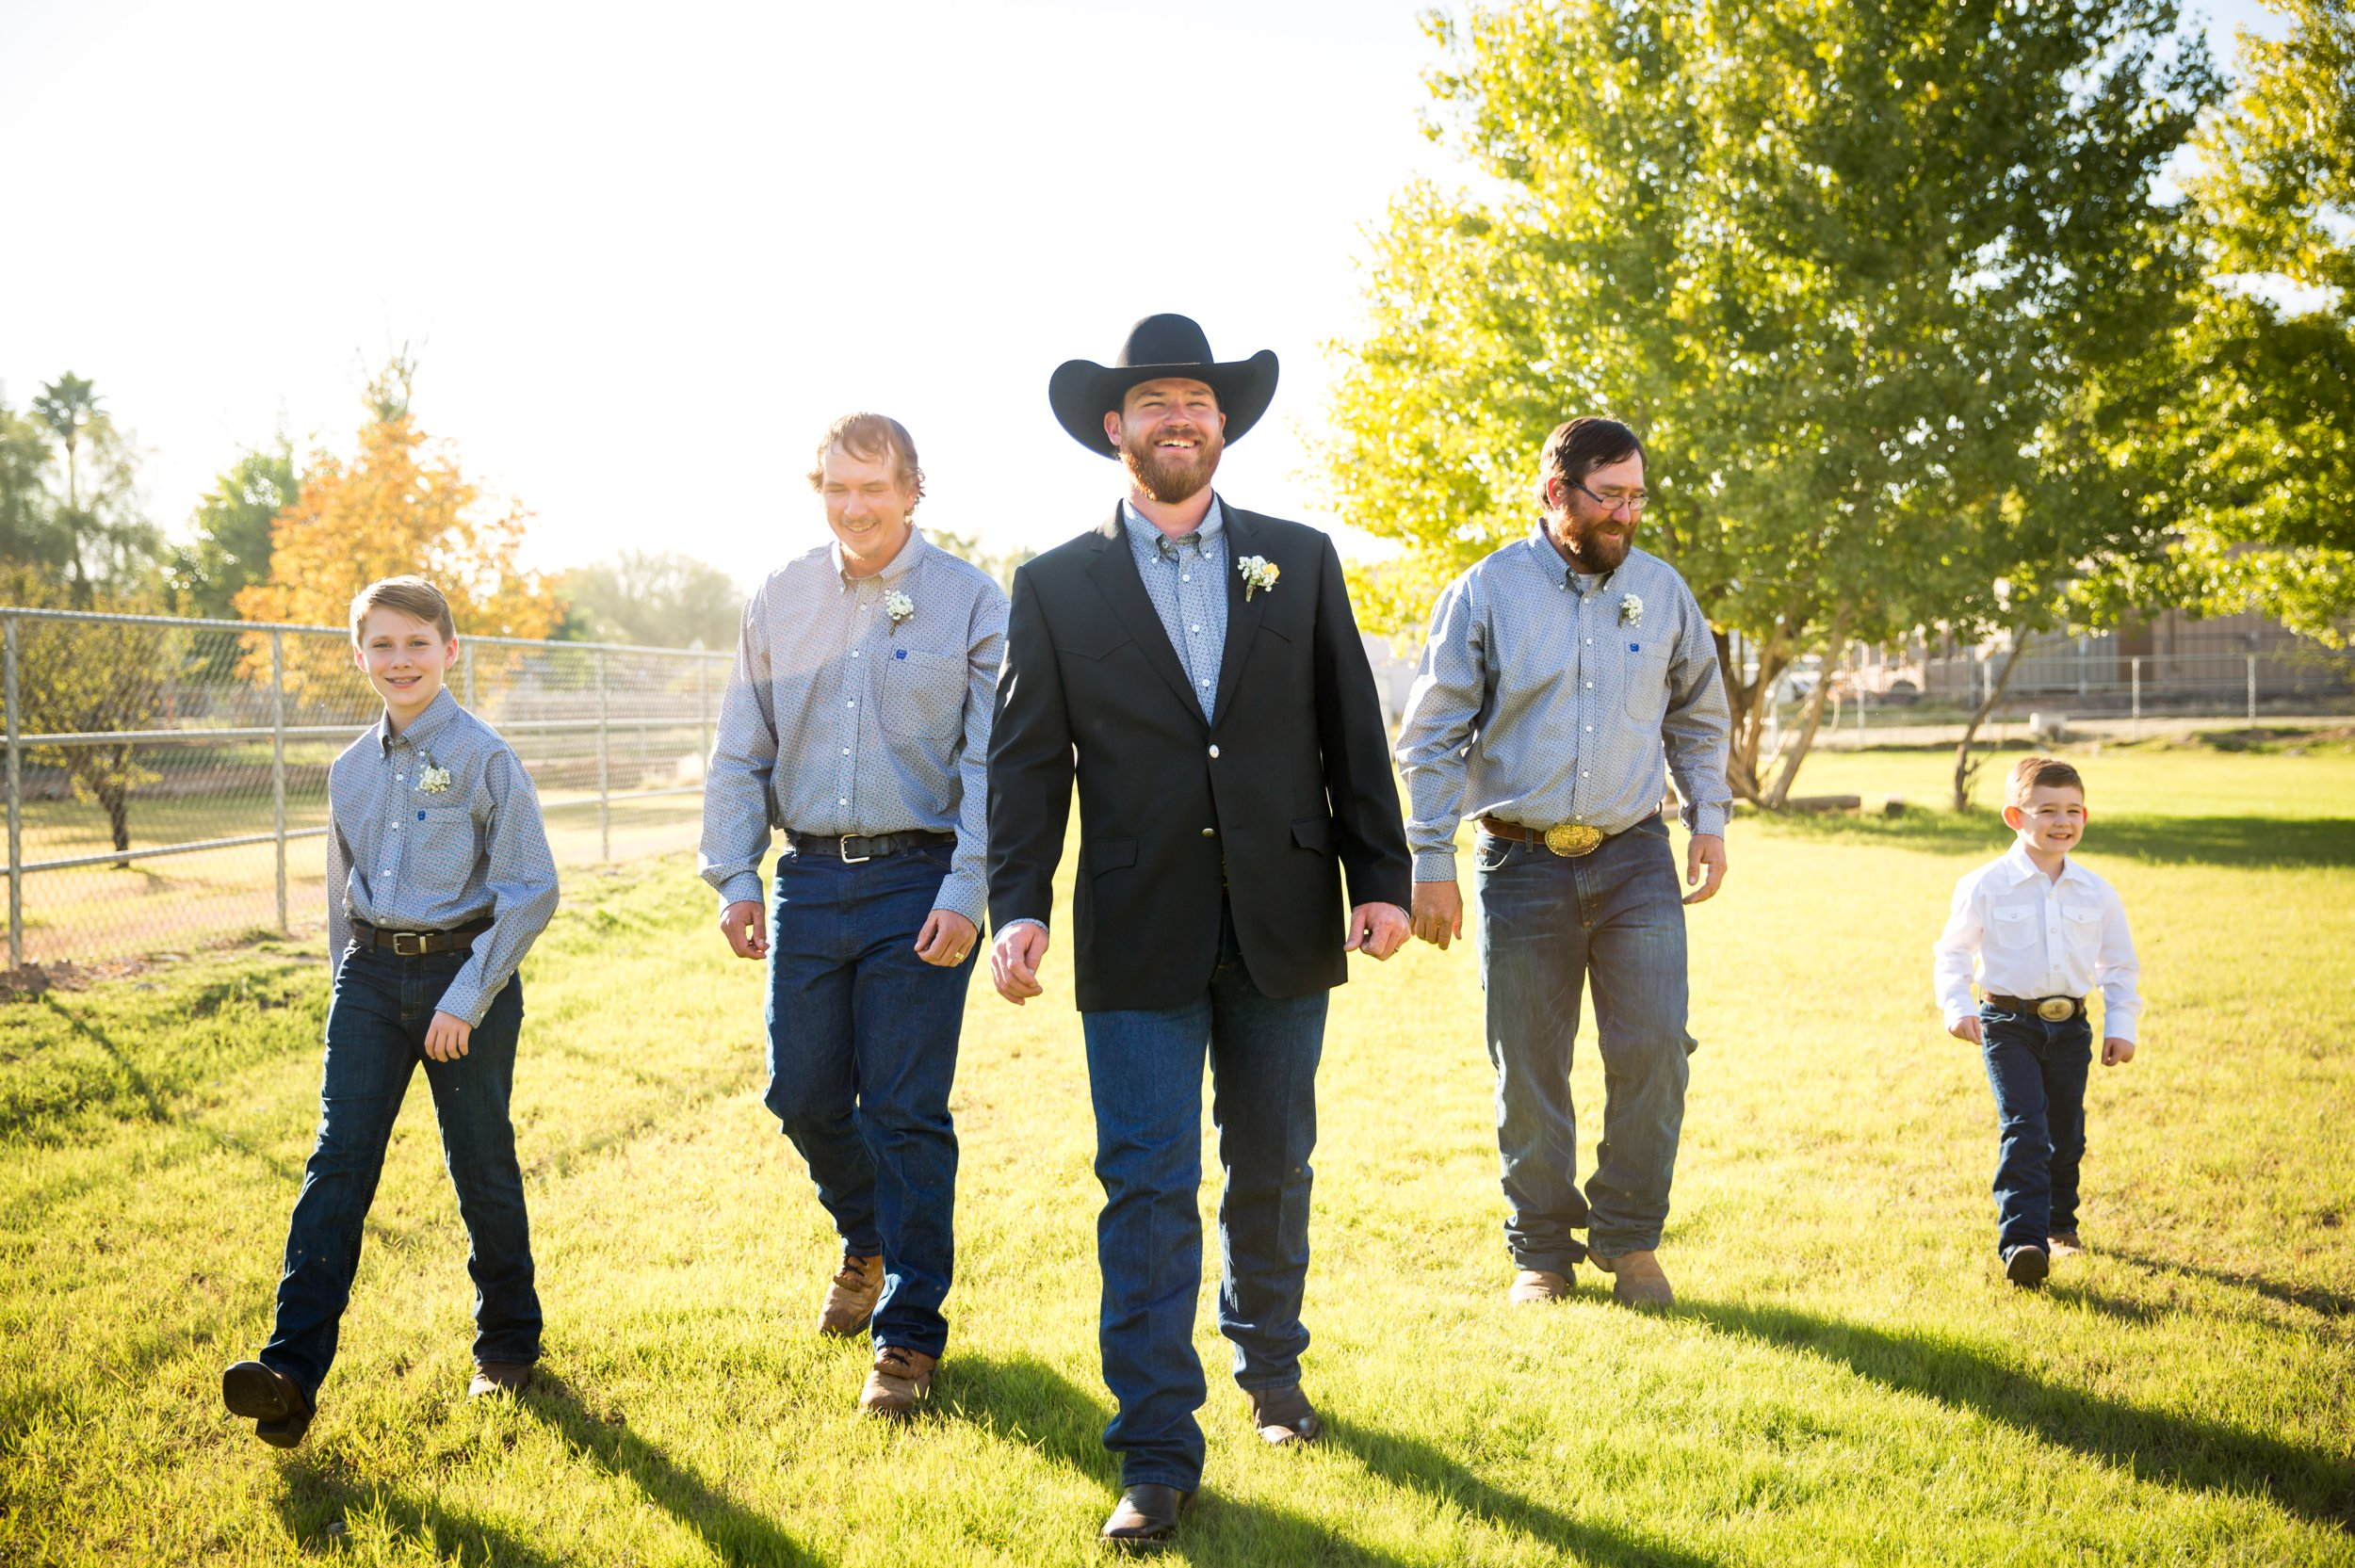 Waddell Wedding | Western Inspired